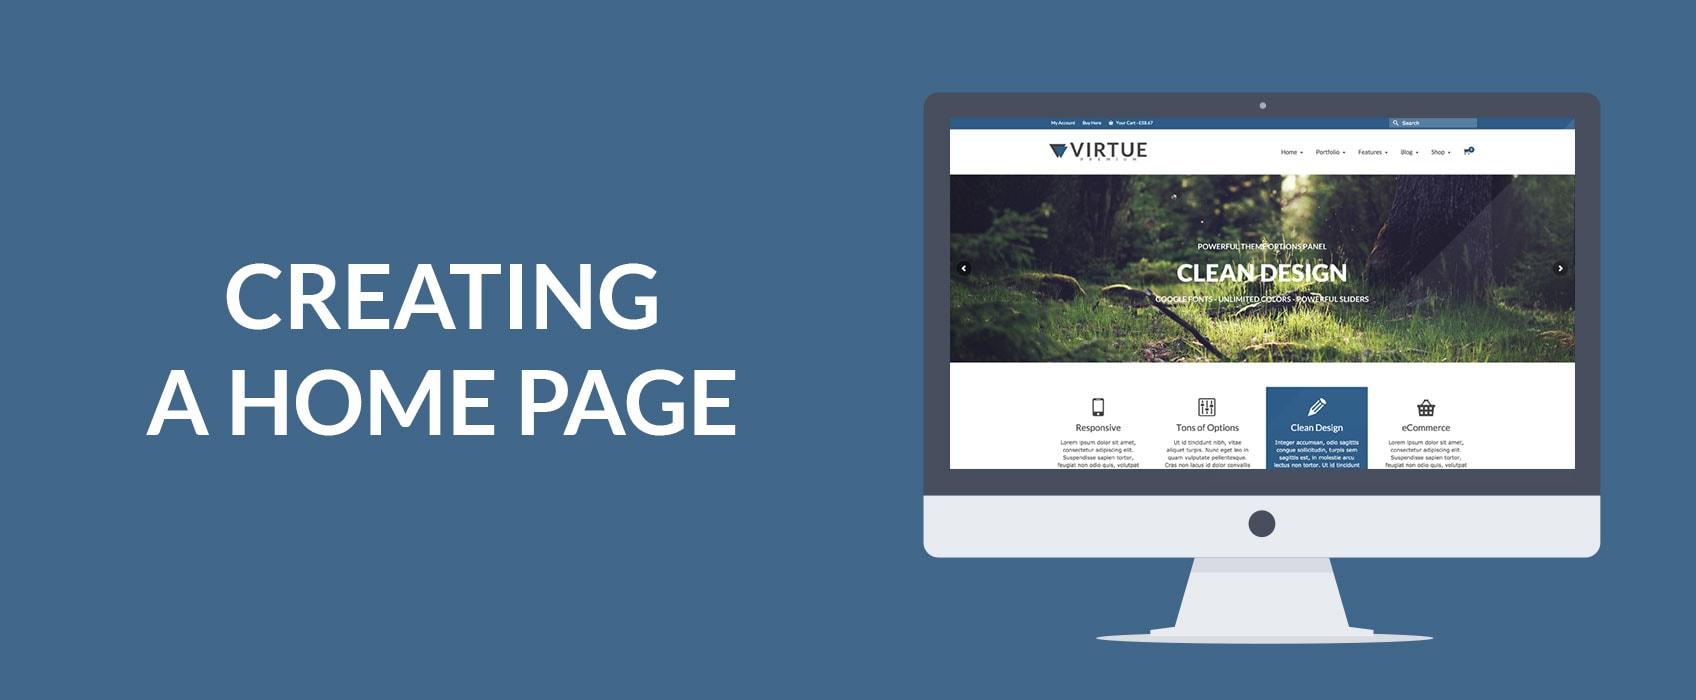 kadence themes creating a home page with virtue